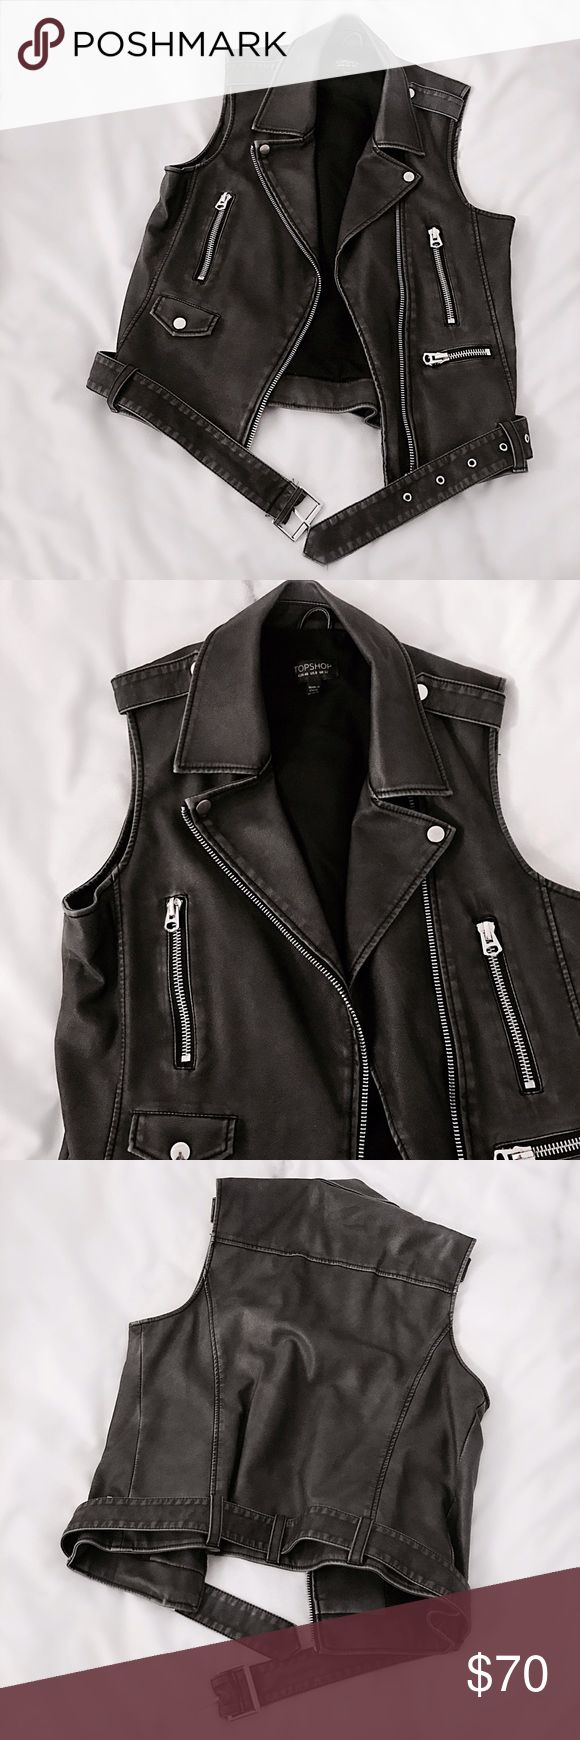 """Topshop 'Sylvia' Vegan Leather Biker Vest Faded black vegan leather biker vest by Topshop. Features 3 zip pockets to front, detachable belt, boxy fit, and silver hardware. Diagonal zip front. Marked size US8, equivalent to a size Medium and great for smaller sizes as well if you want a boxy fit. Worn twice and in perfect condition. 24""""L, 19"""" pit to pit. Retail $90. Topshop Jackets & Coats Vests"""